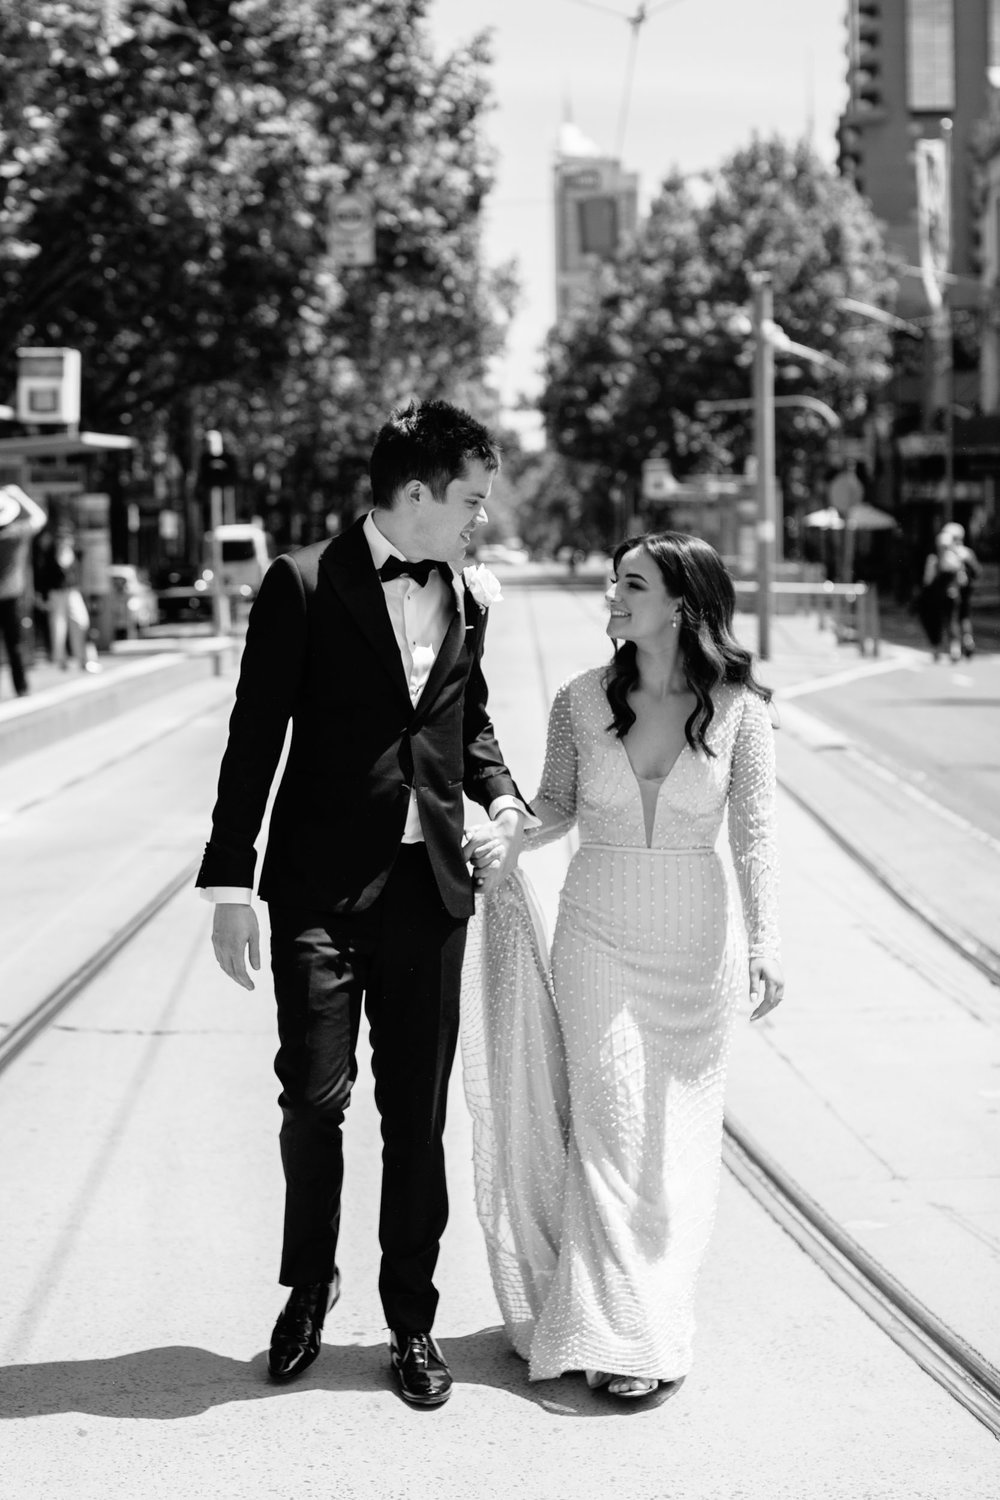 Kas-Richards-Wedding-Photographer-Melbourne-City-Wedding-Alto-Event-Space-Jane-Hill-Bridal-Gown-14.jpg